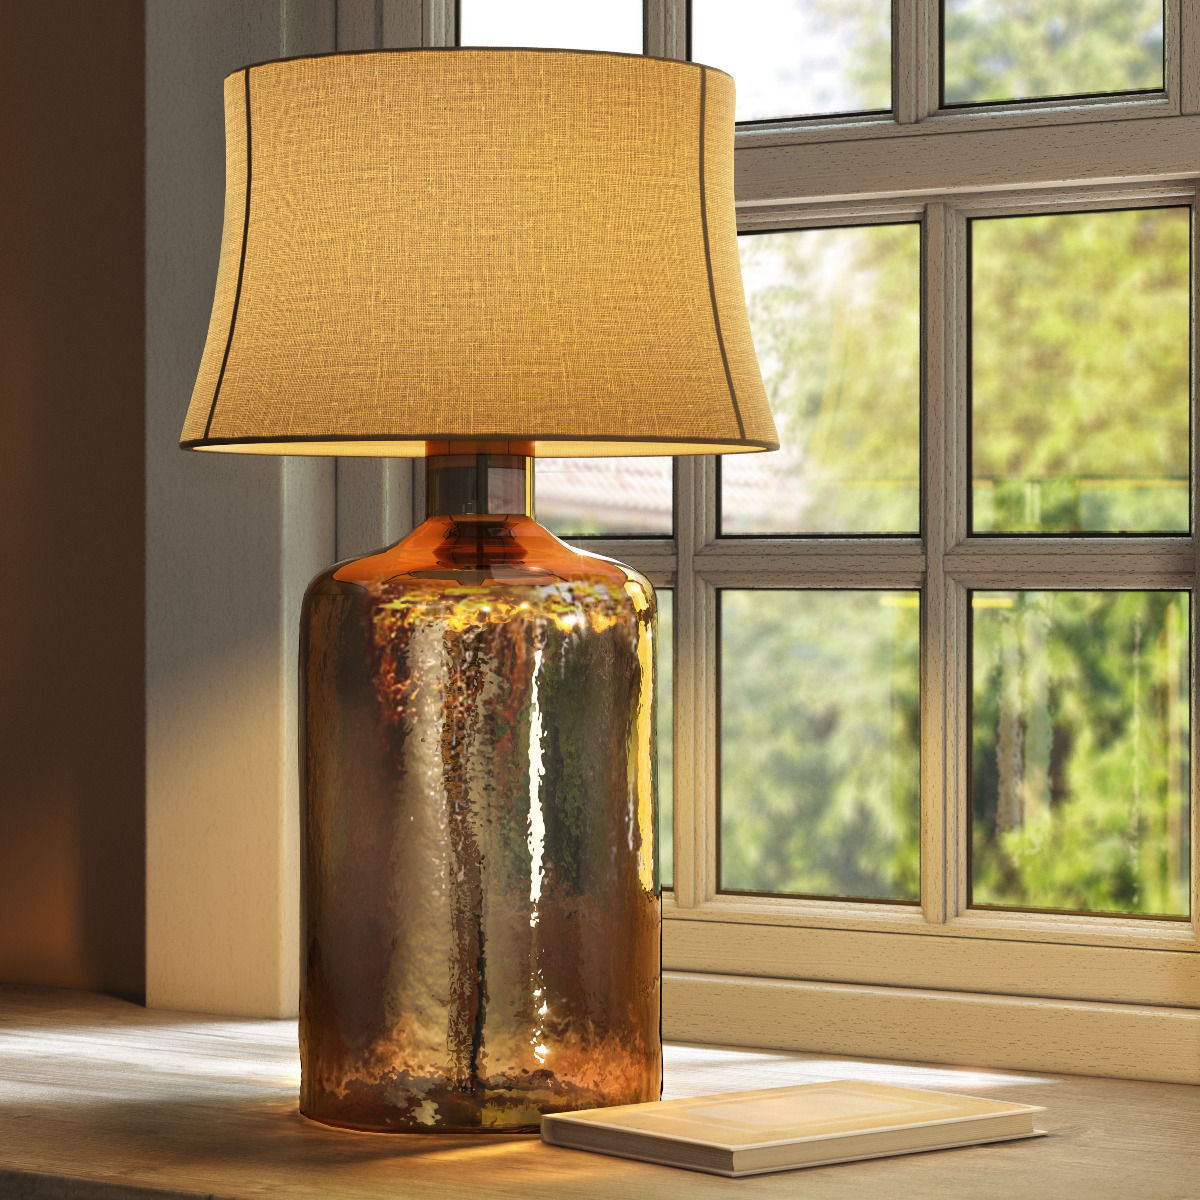 Pottery Barn Clift Glass Table Lamp Base - Espresso 3D ...